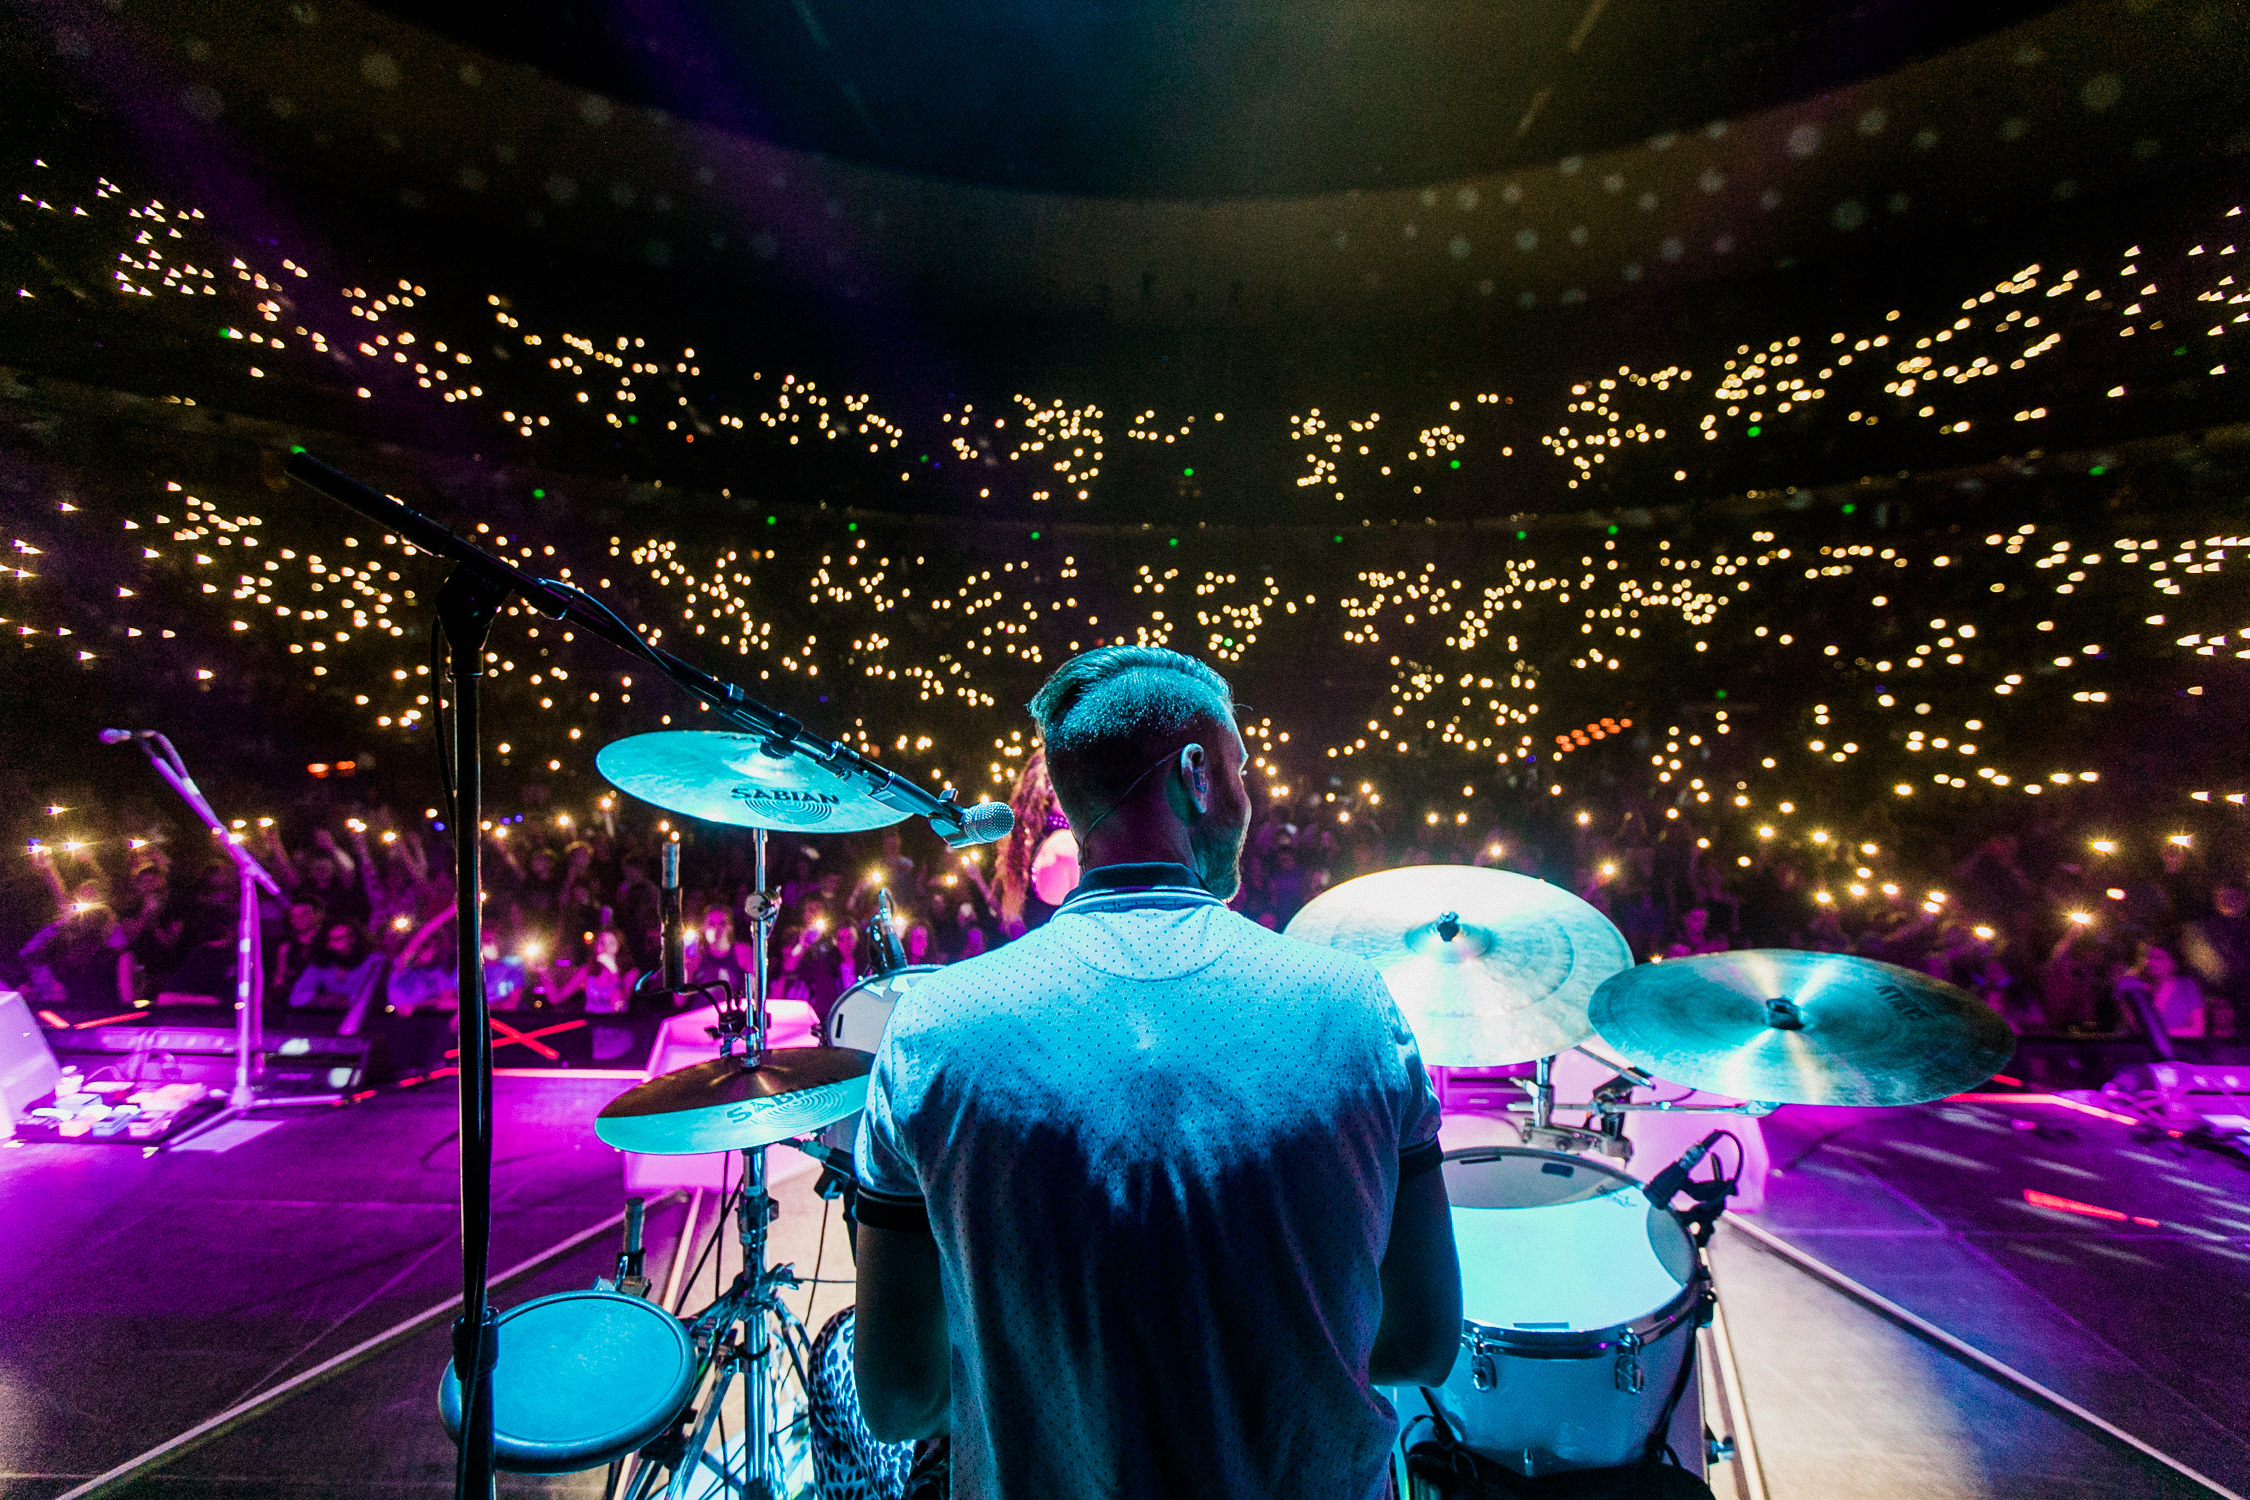 etienne-bolwer-cell-phone-lights-arena-tour-misterwives-upstage-AnnaLeeMedia